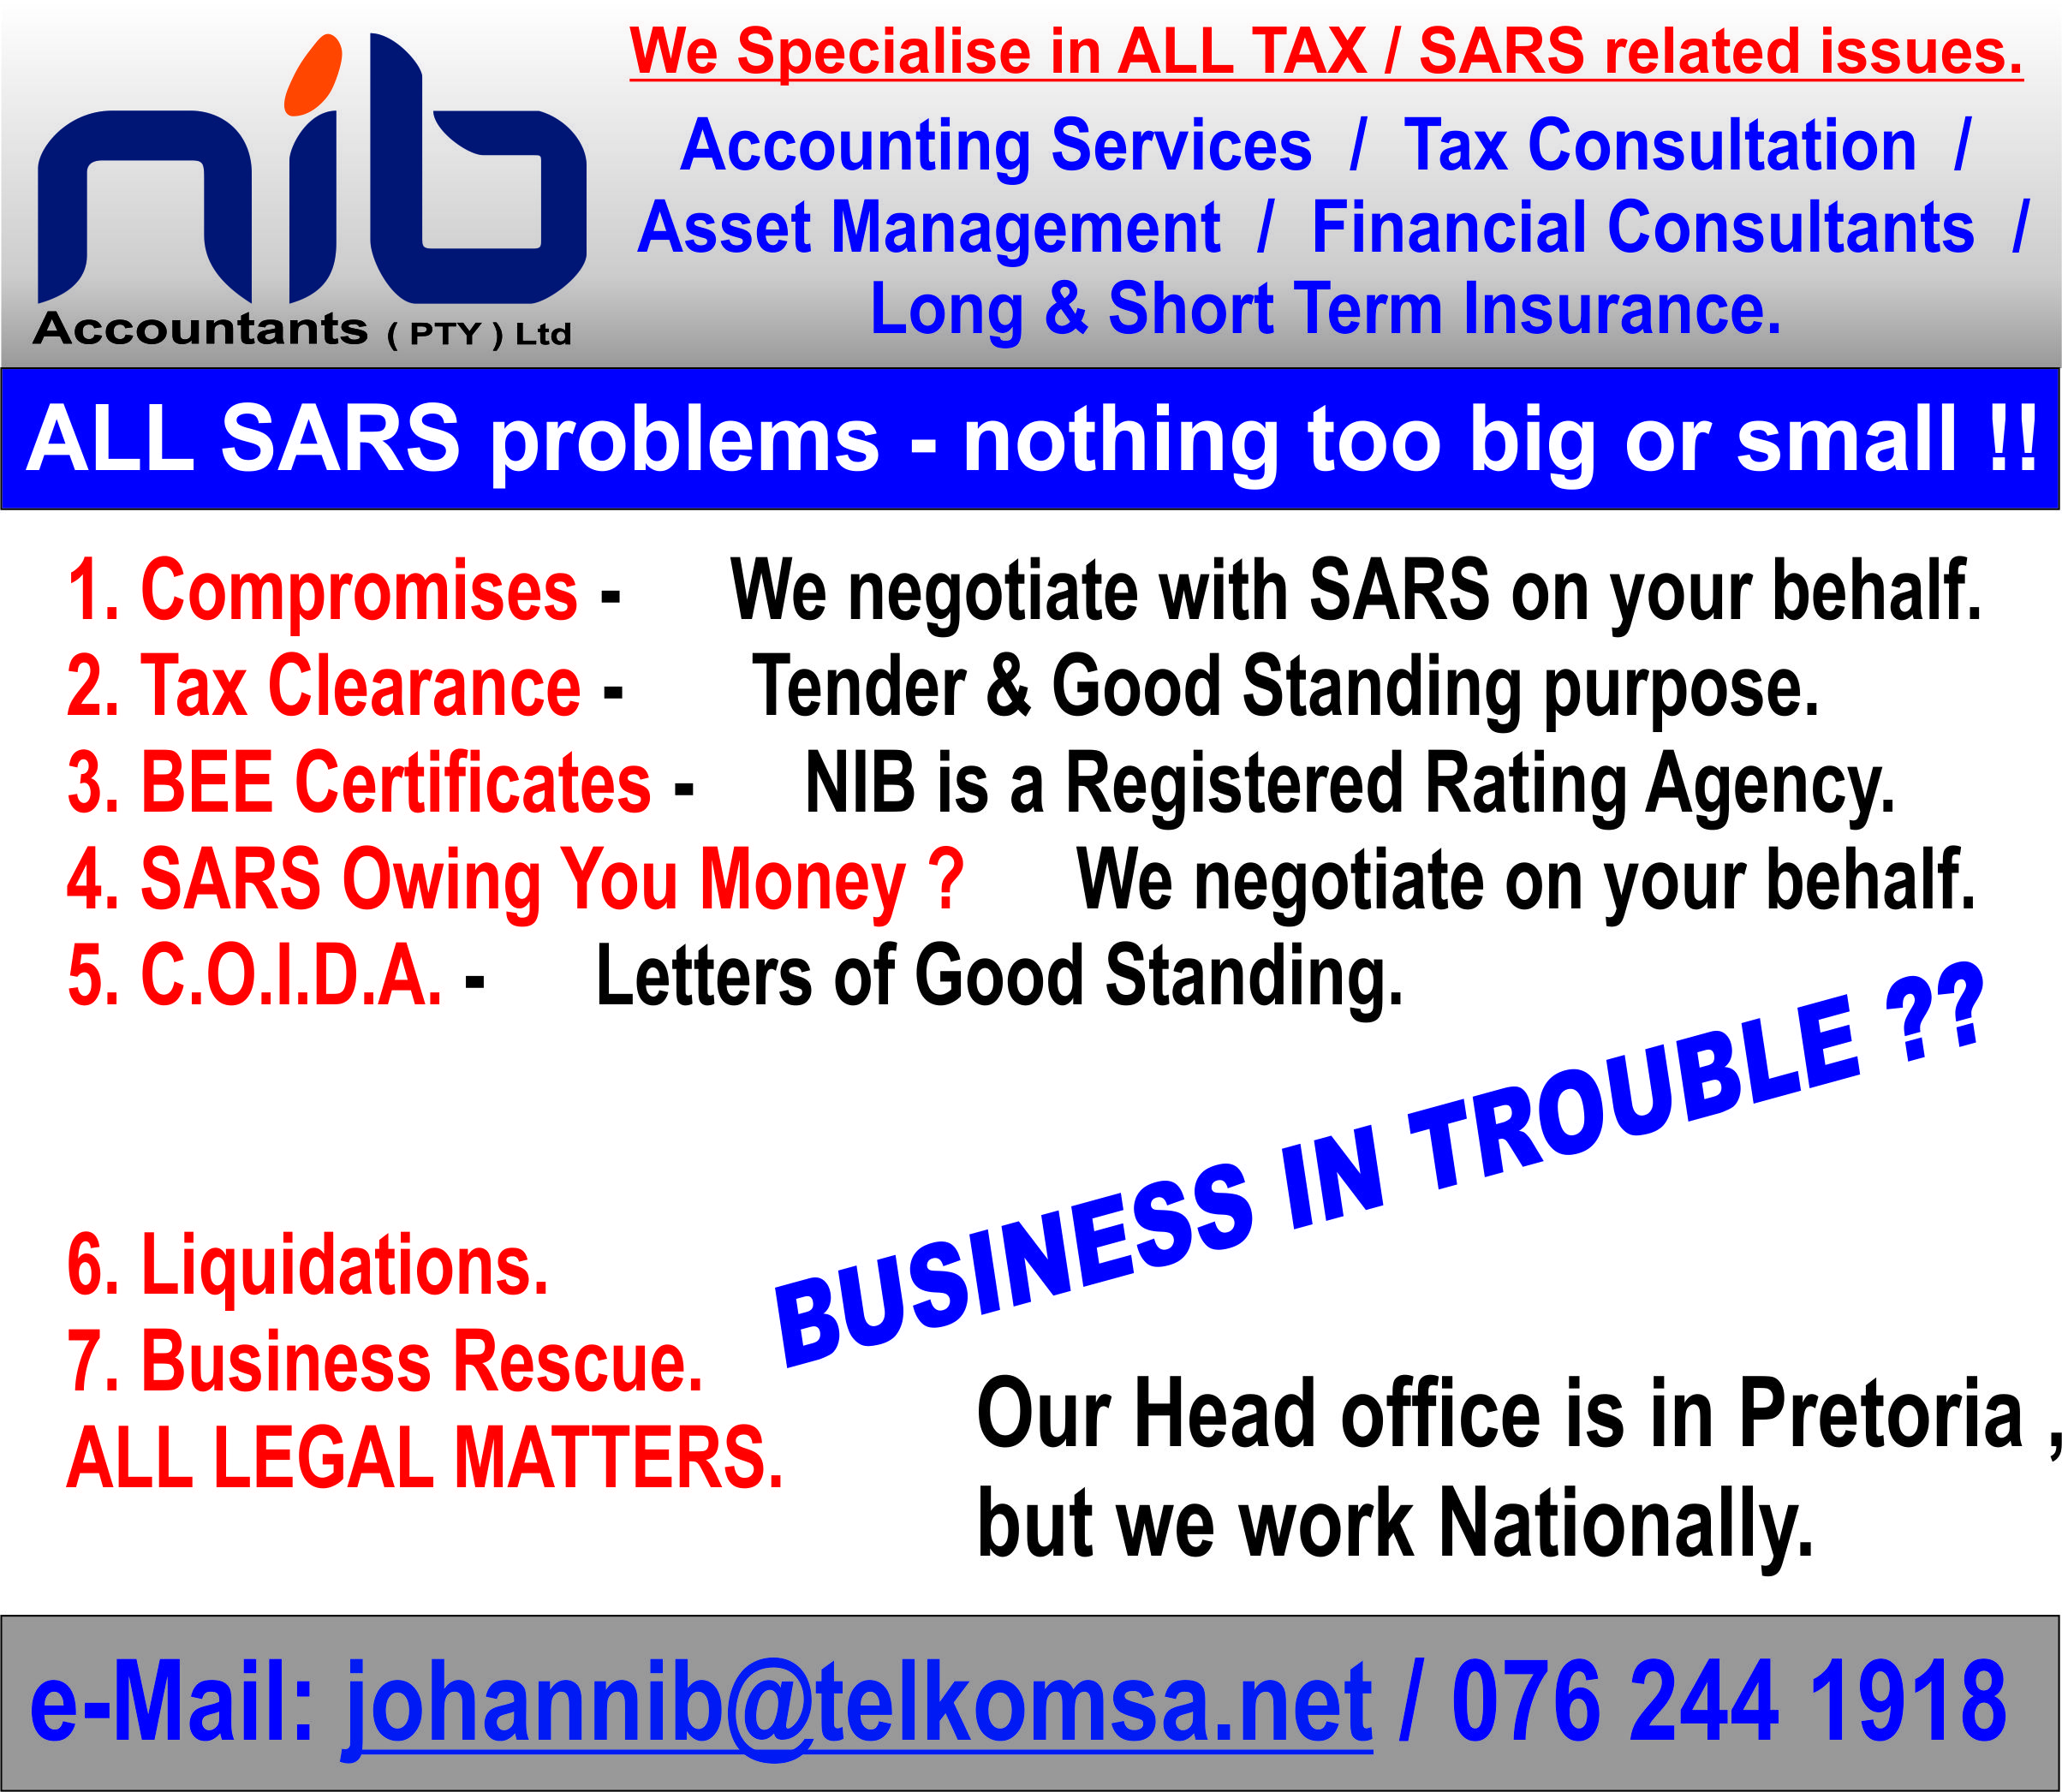 Pressure From Sars Or Creditors ?? Compromises, Tax